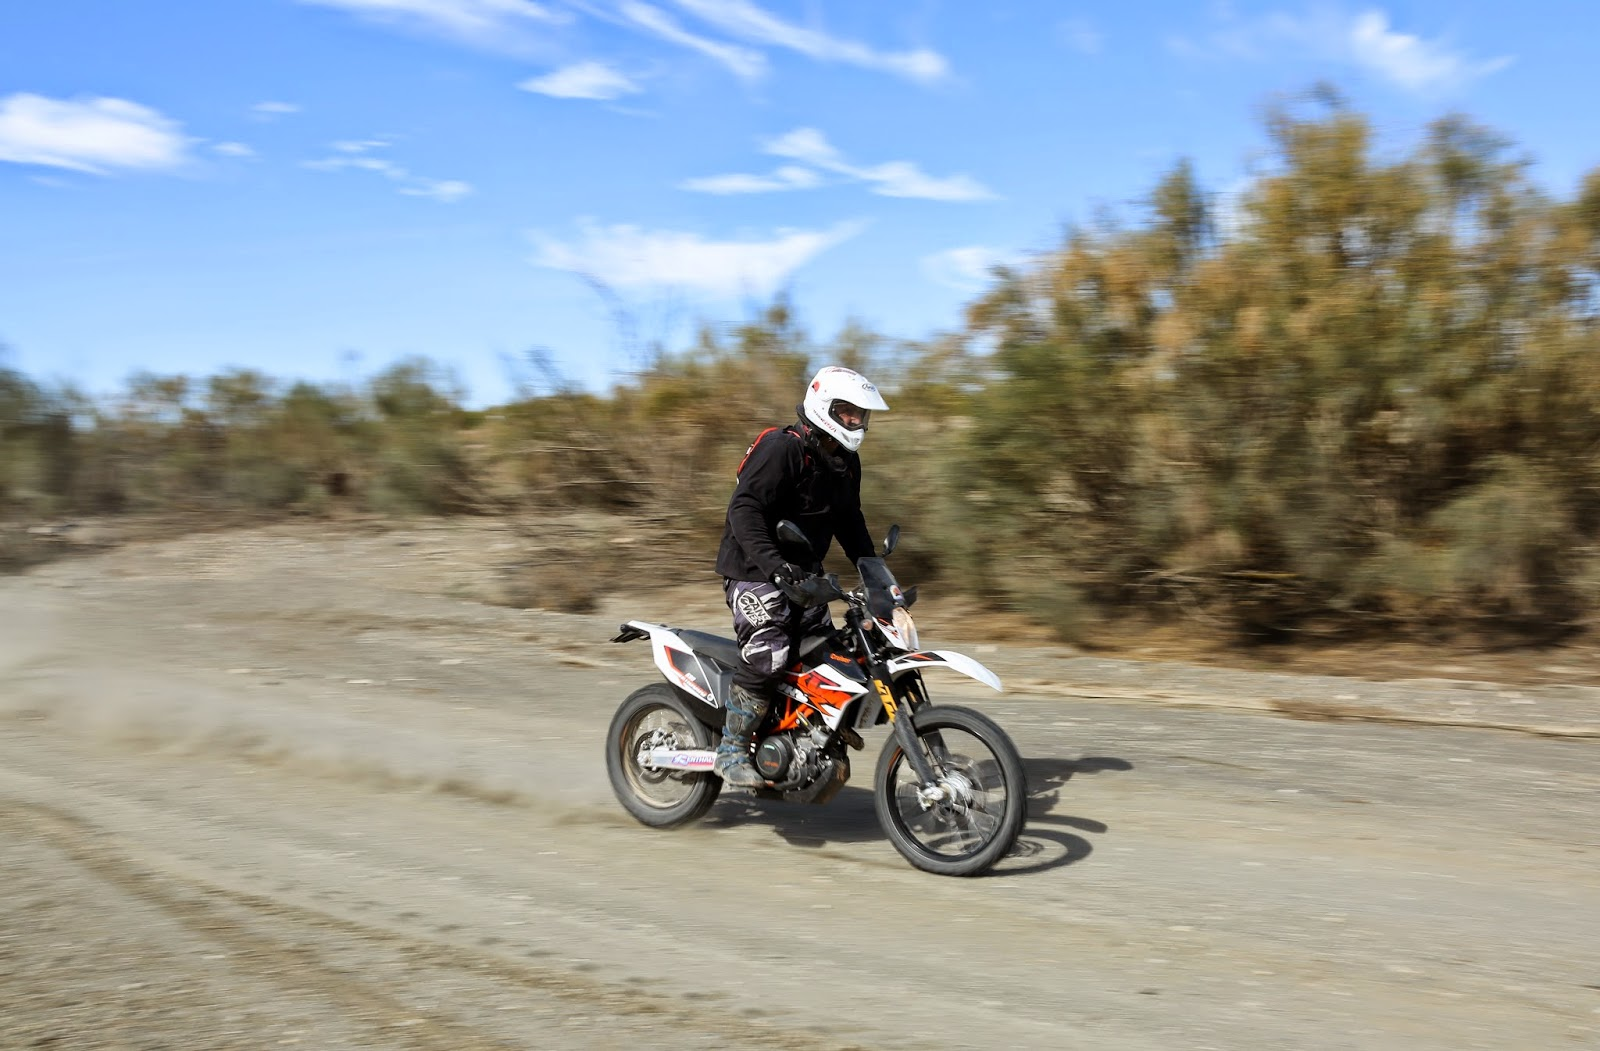 Having fun with the KTM 690